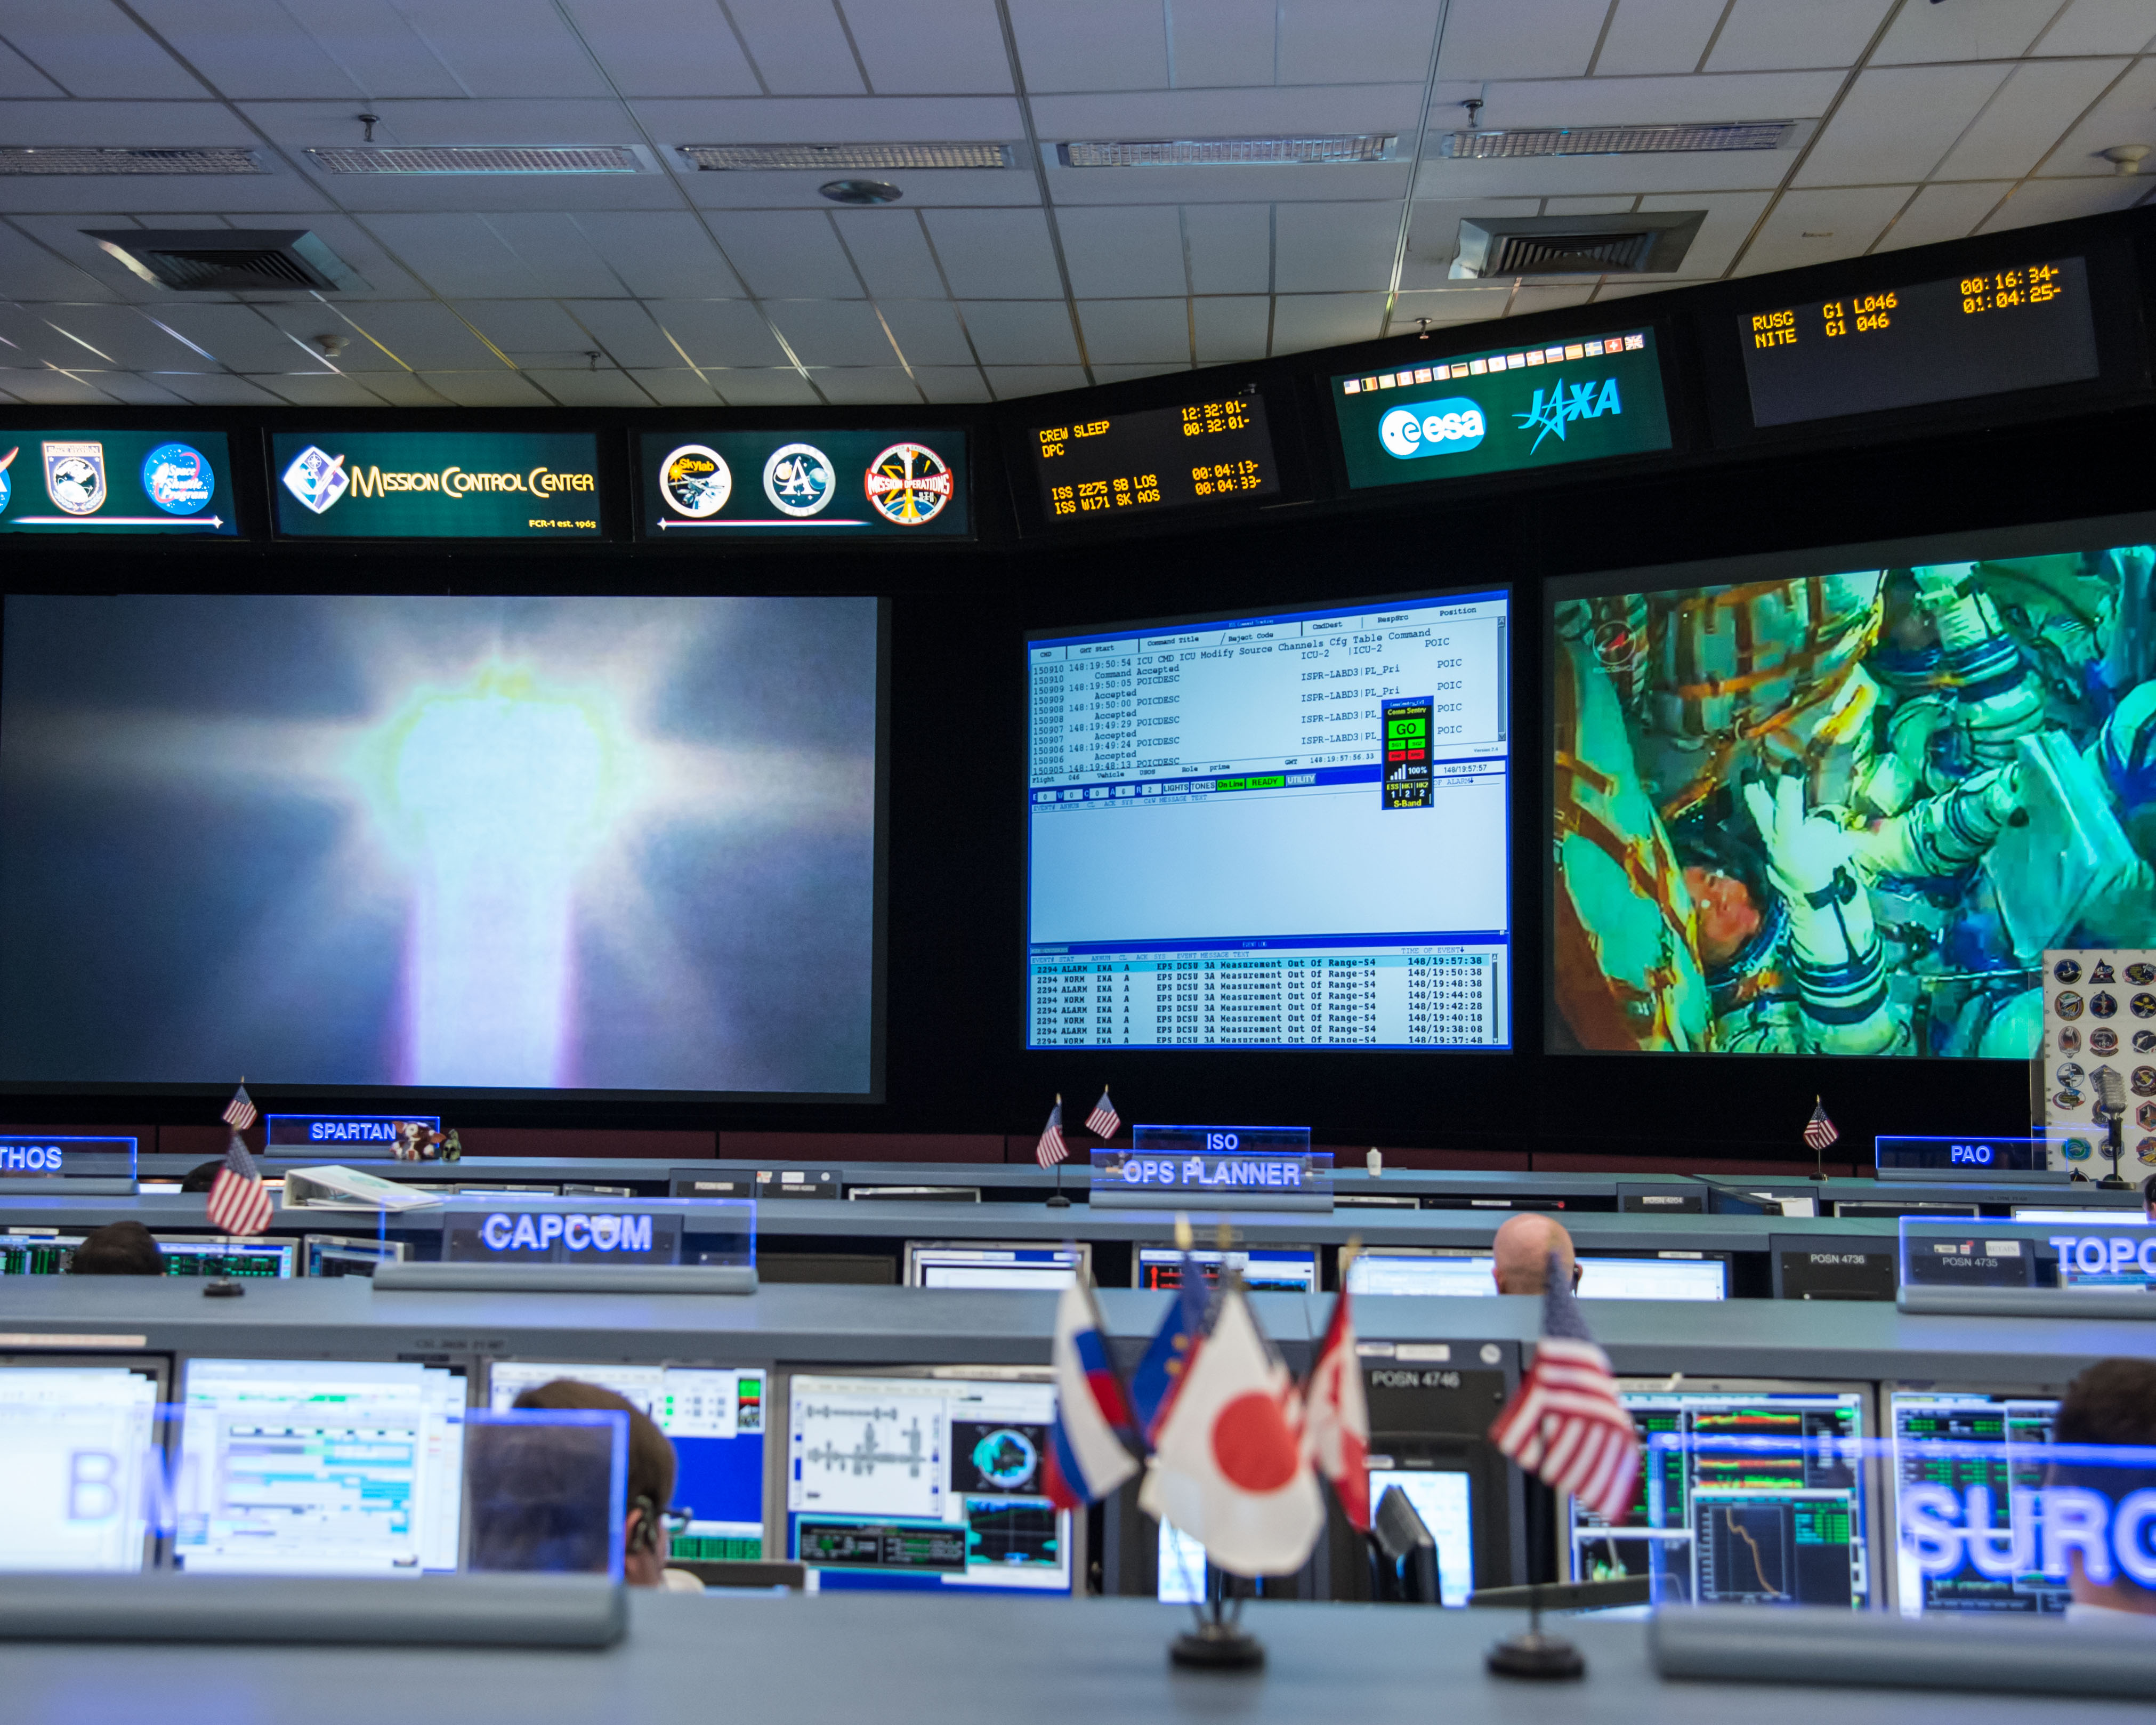 houston space station controls - photo #37